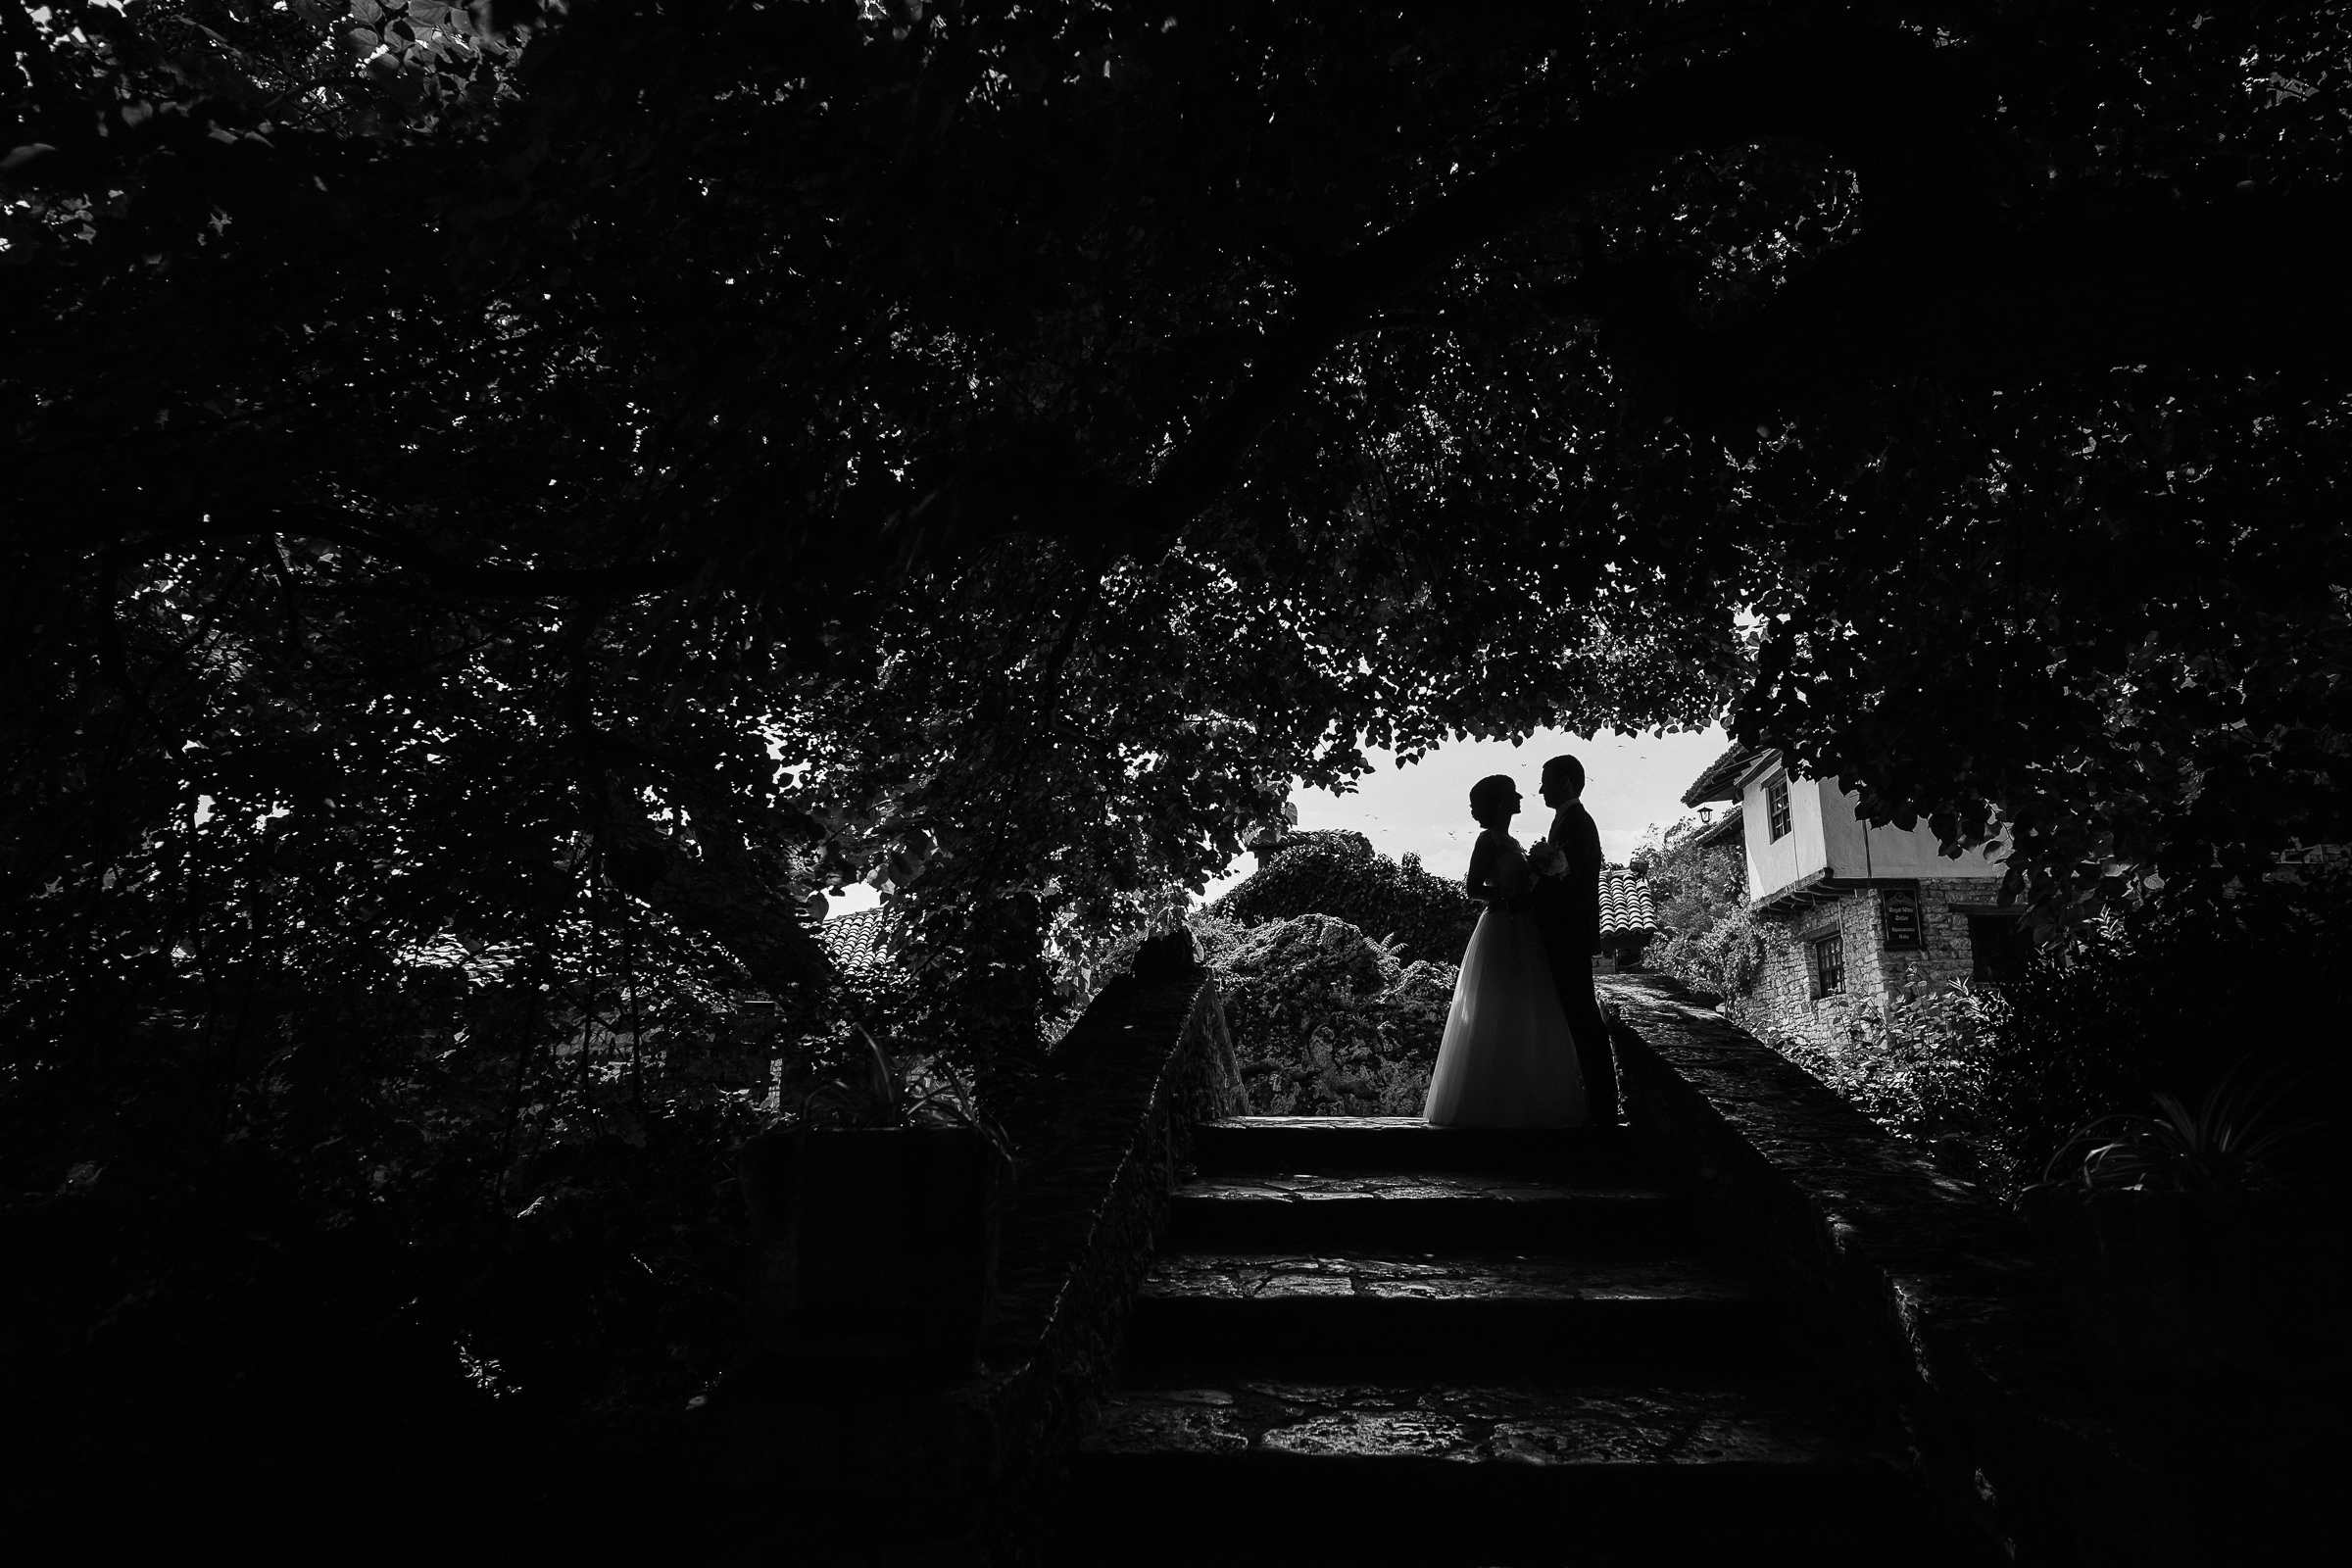 Silhouette couple on outdoor stairway - photo by Deliysky Studio